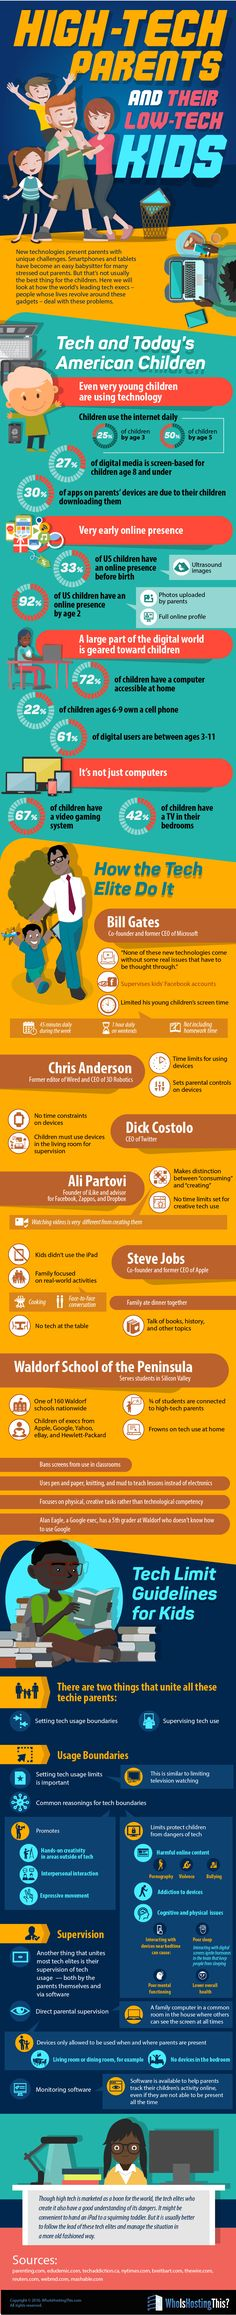 High-Tech Parents and Their Low-Tech Kids #infografía #infographic #Technology